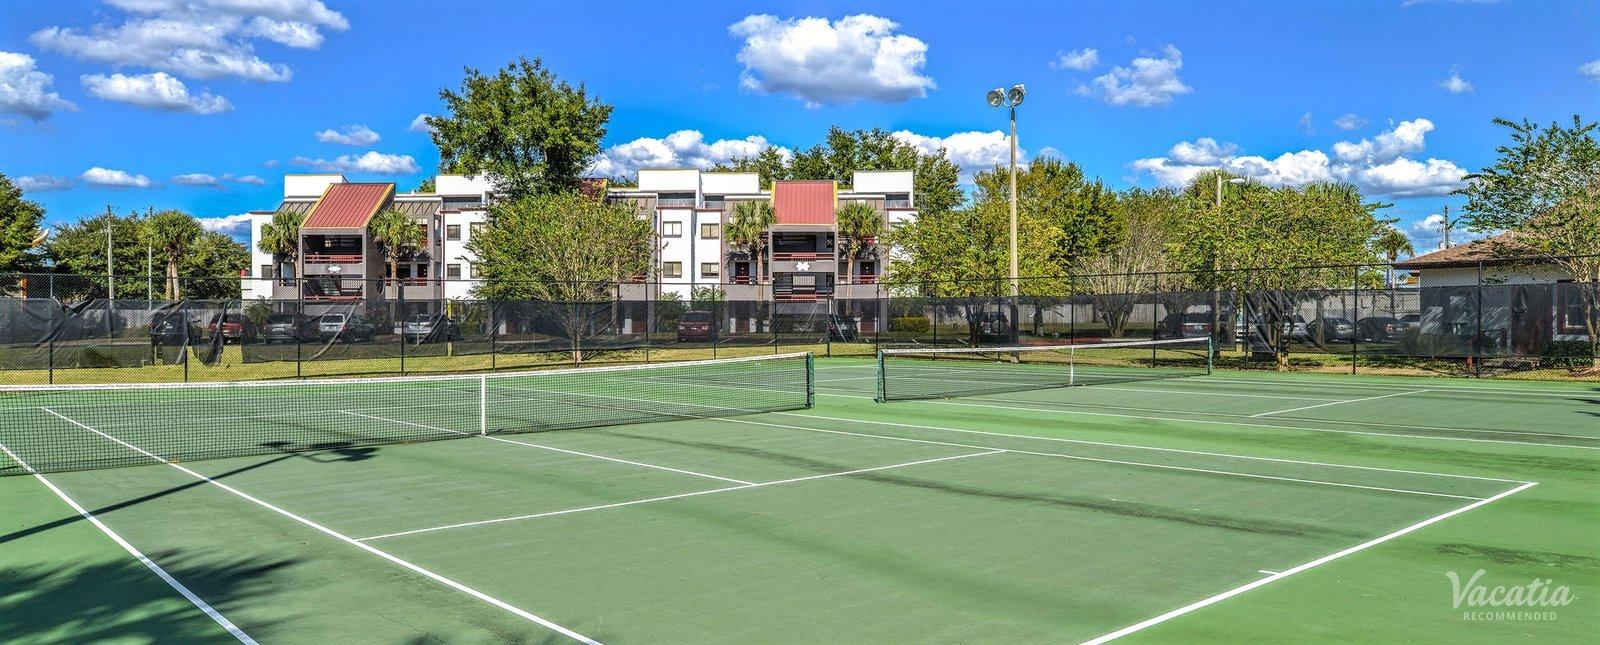 Orbit One Vacation Villas Tennis Courts